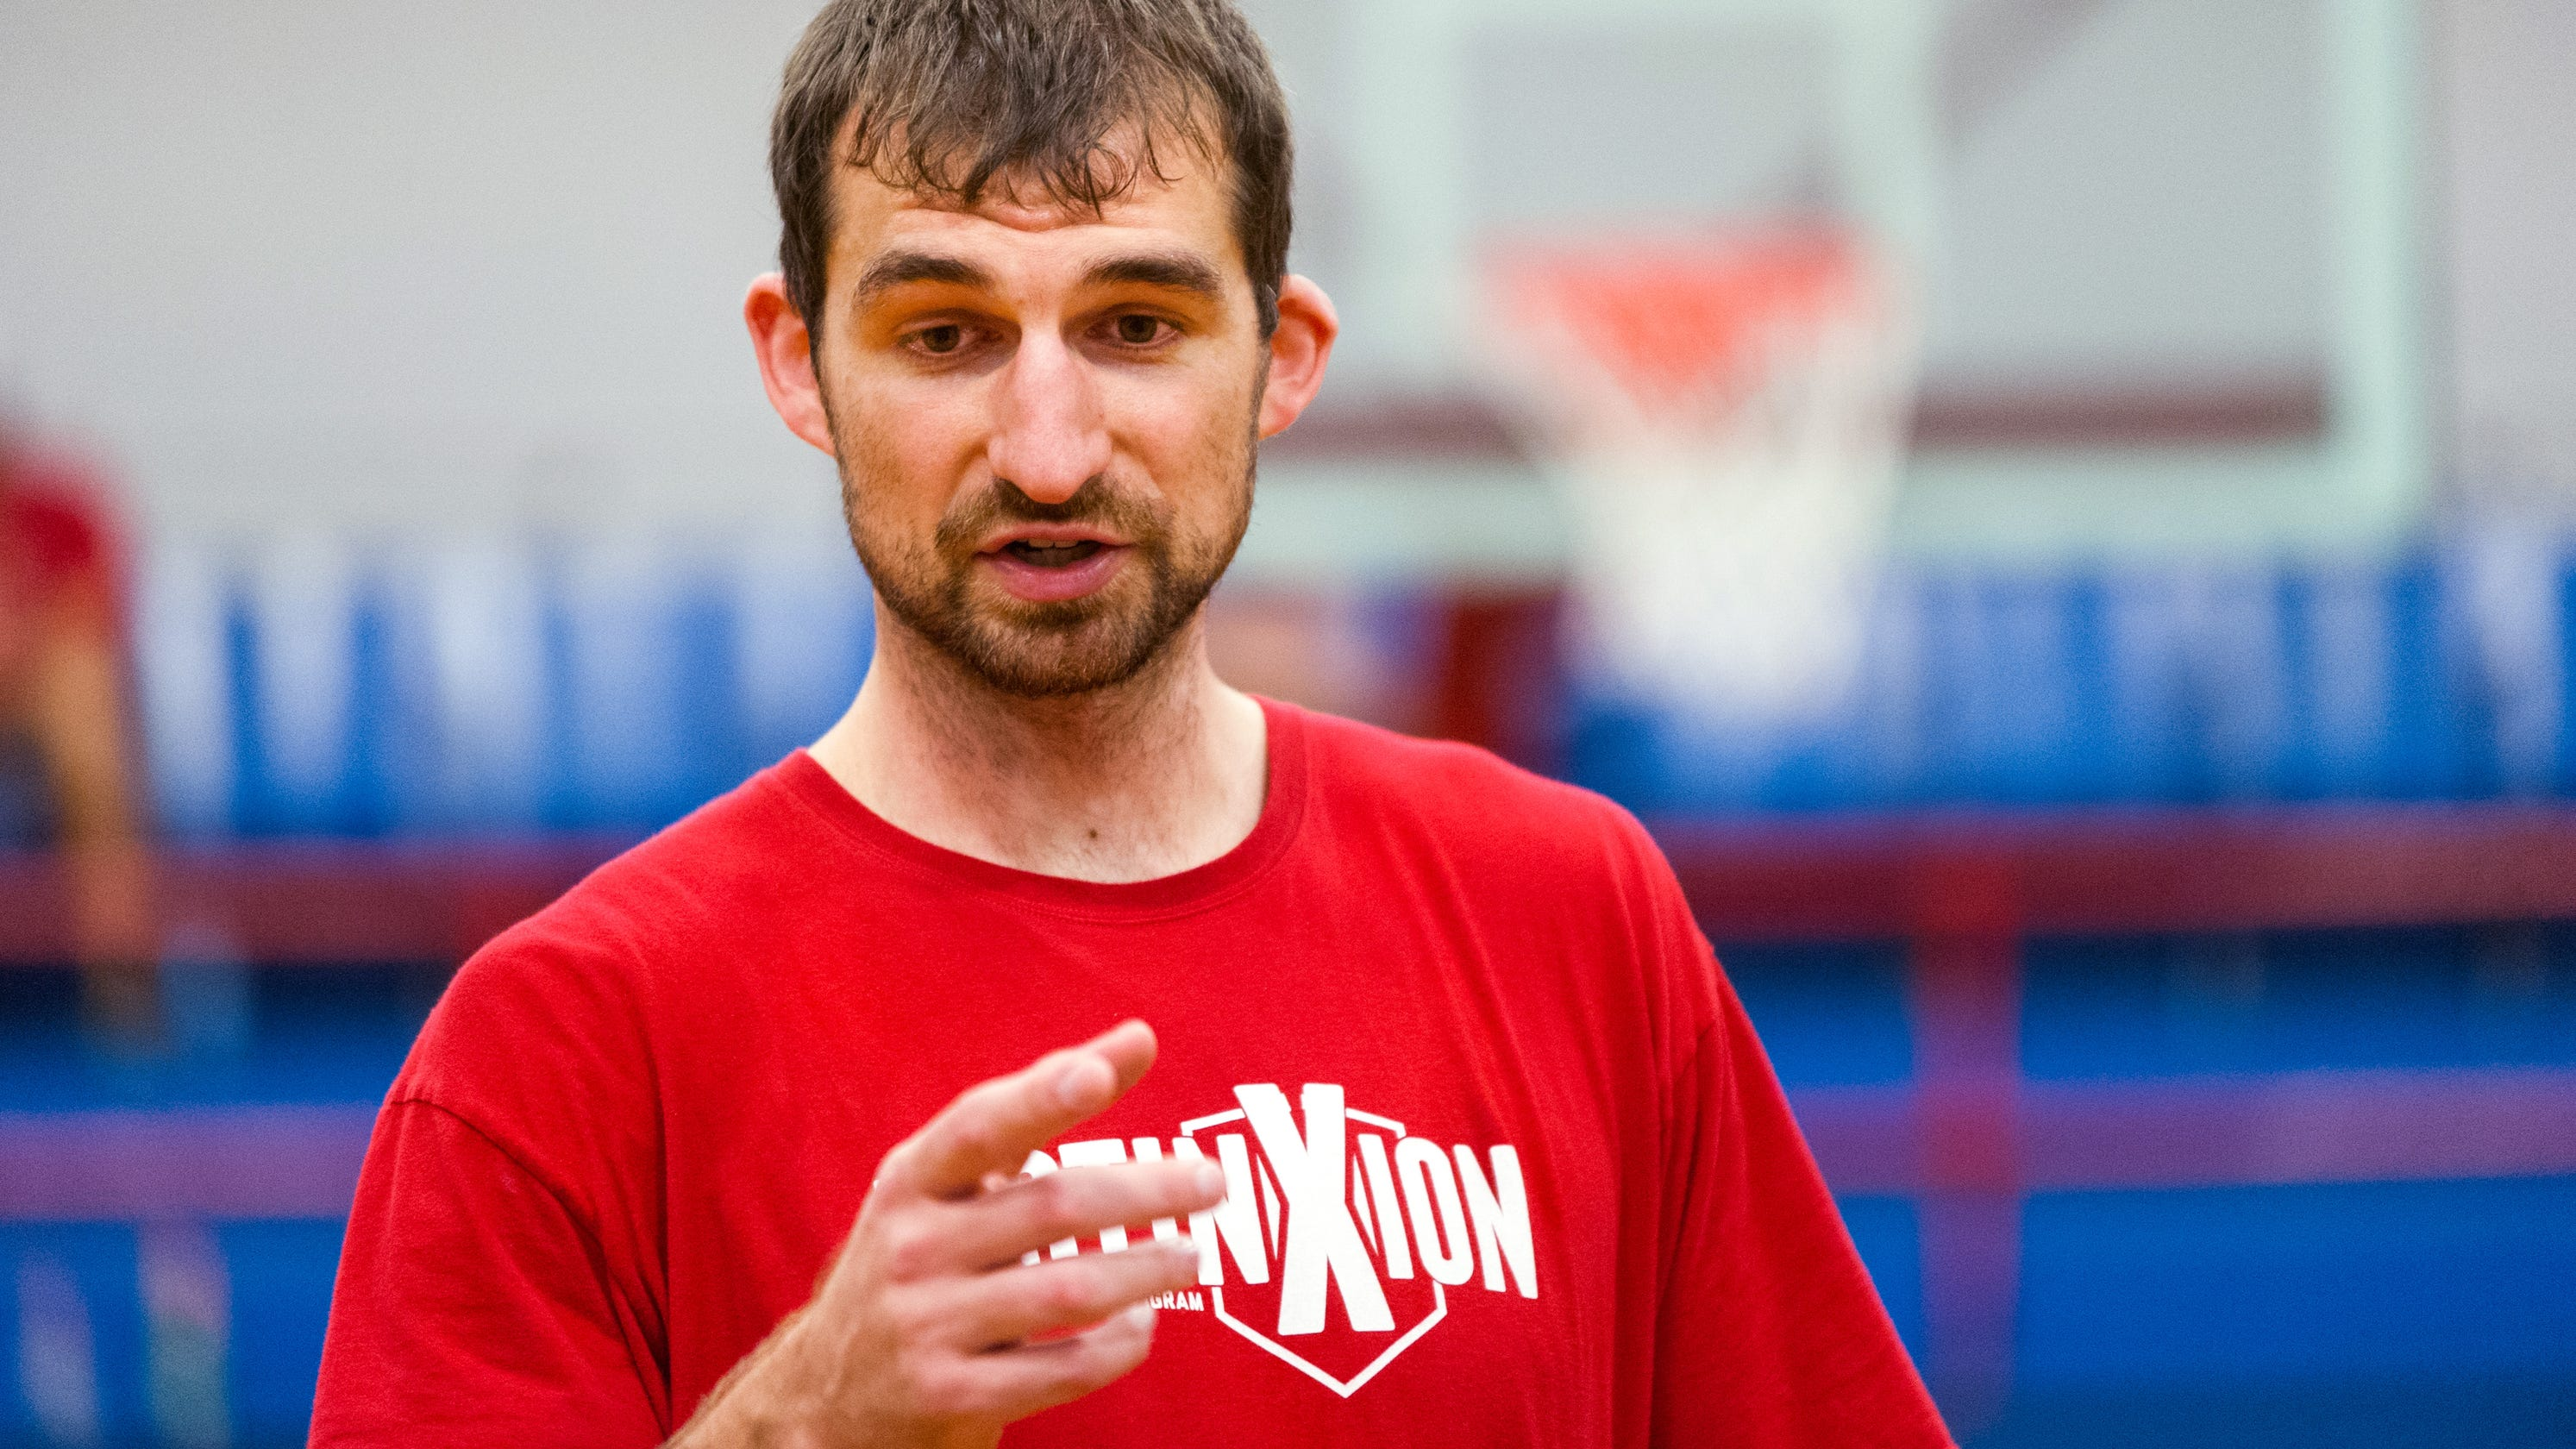 Q&A: Talking Psychology With Former Indiana Mr. Basketball